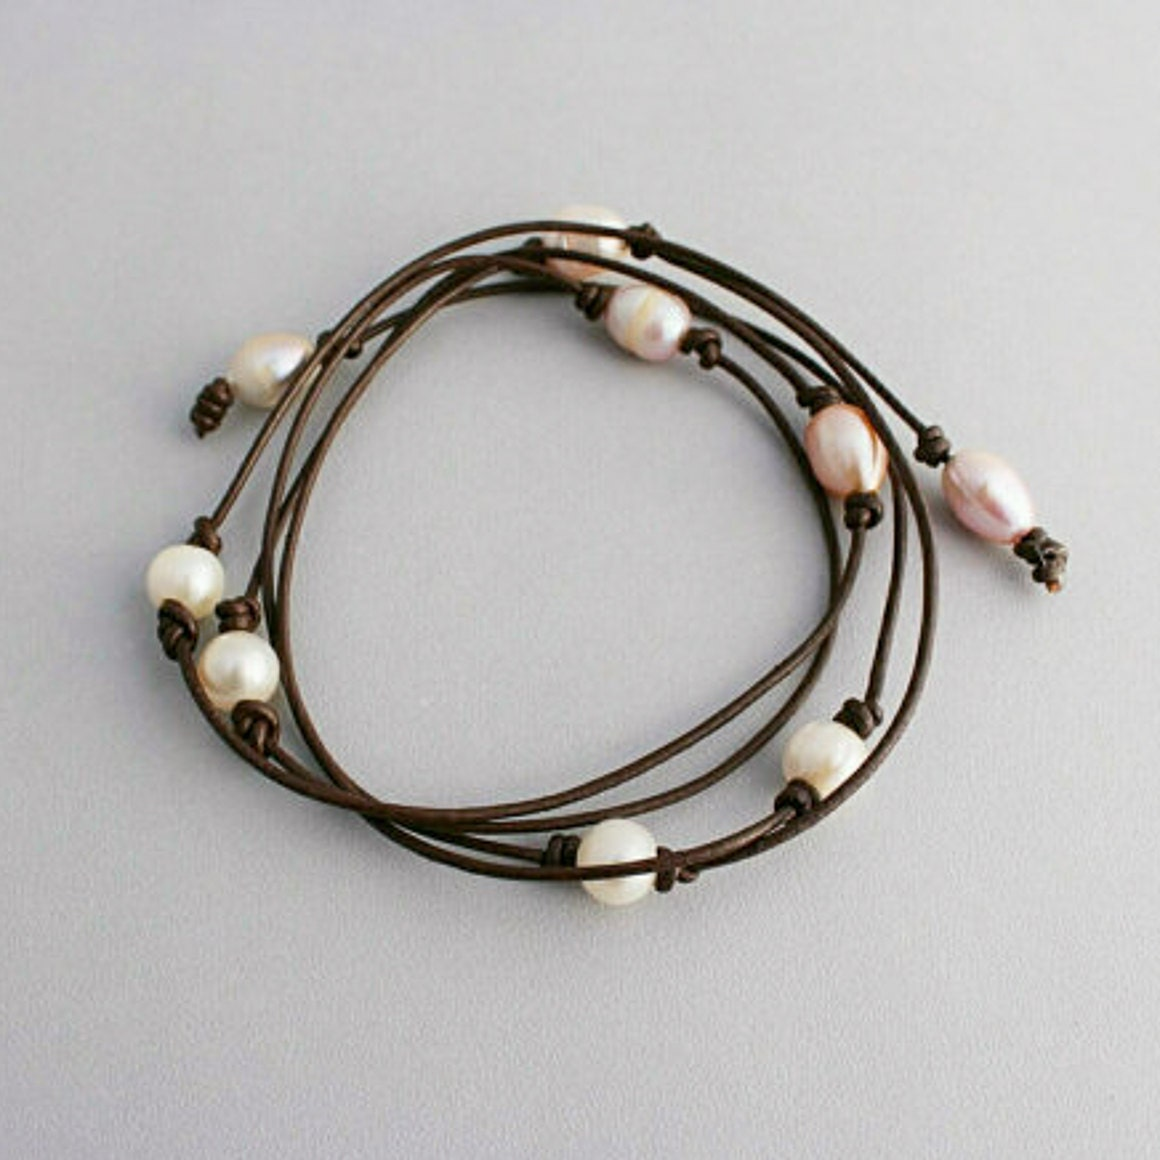 Pearl Leather Lariat Long Wrap Necklace 3rd Anniversary Gift. Oxidized Anklet. Diy Chain Anklet. Freshwater Pearl Anklet. Fine Gold Anklet. Elegant Anklet. Beach Sandal Anklet. Gold Japan Anklet. Paunji Anklet